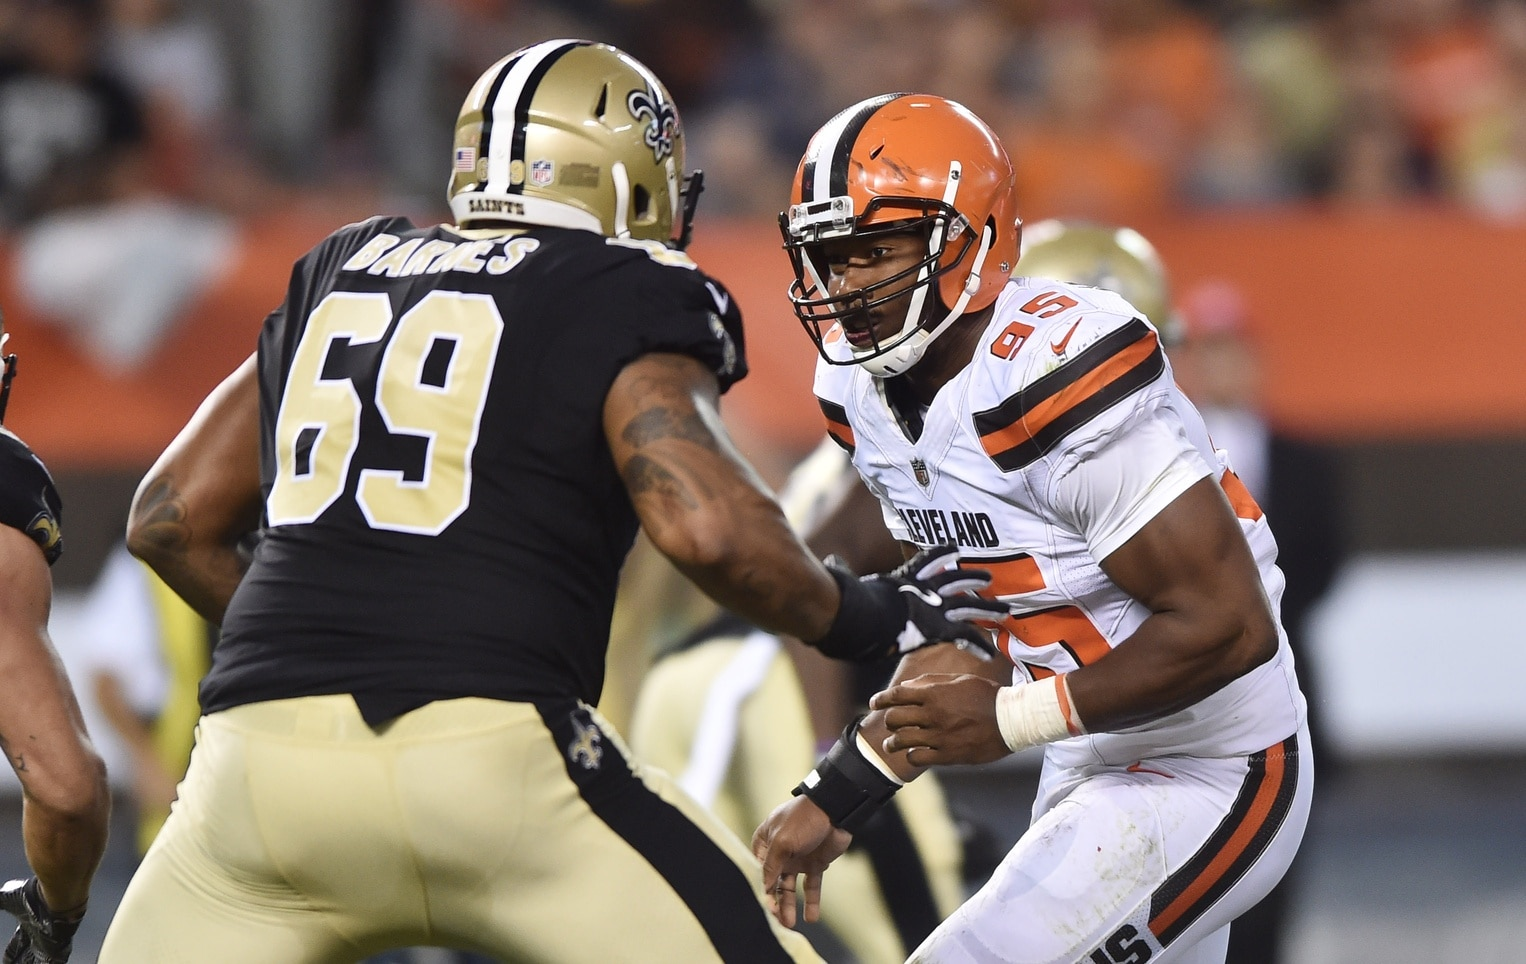 Myles Garrett should help the Browns' defense big time as a rookie.